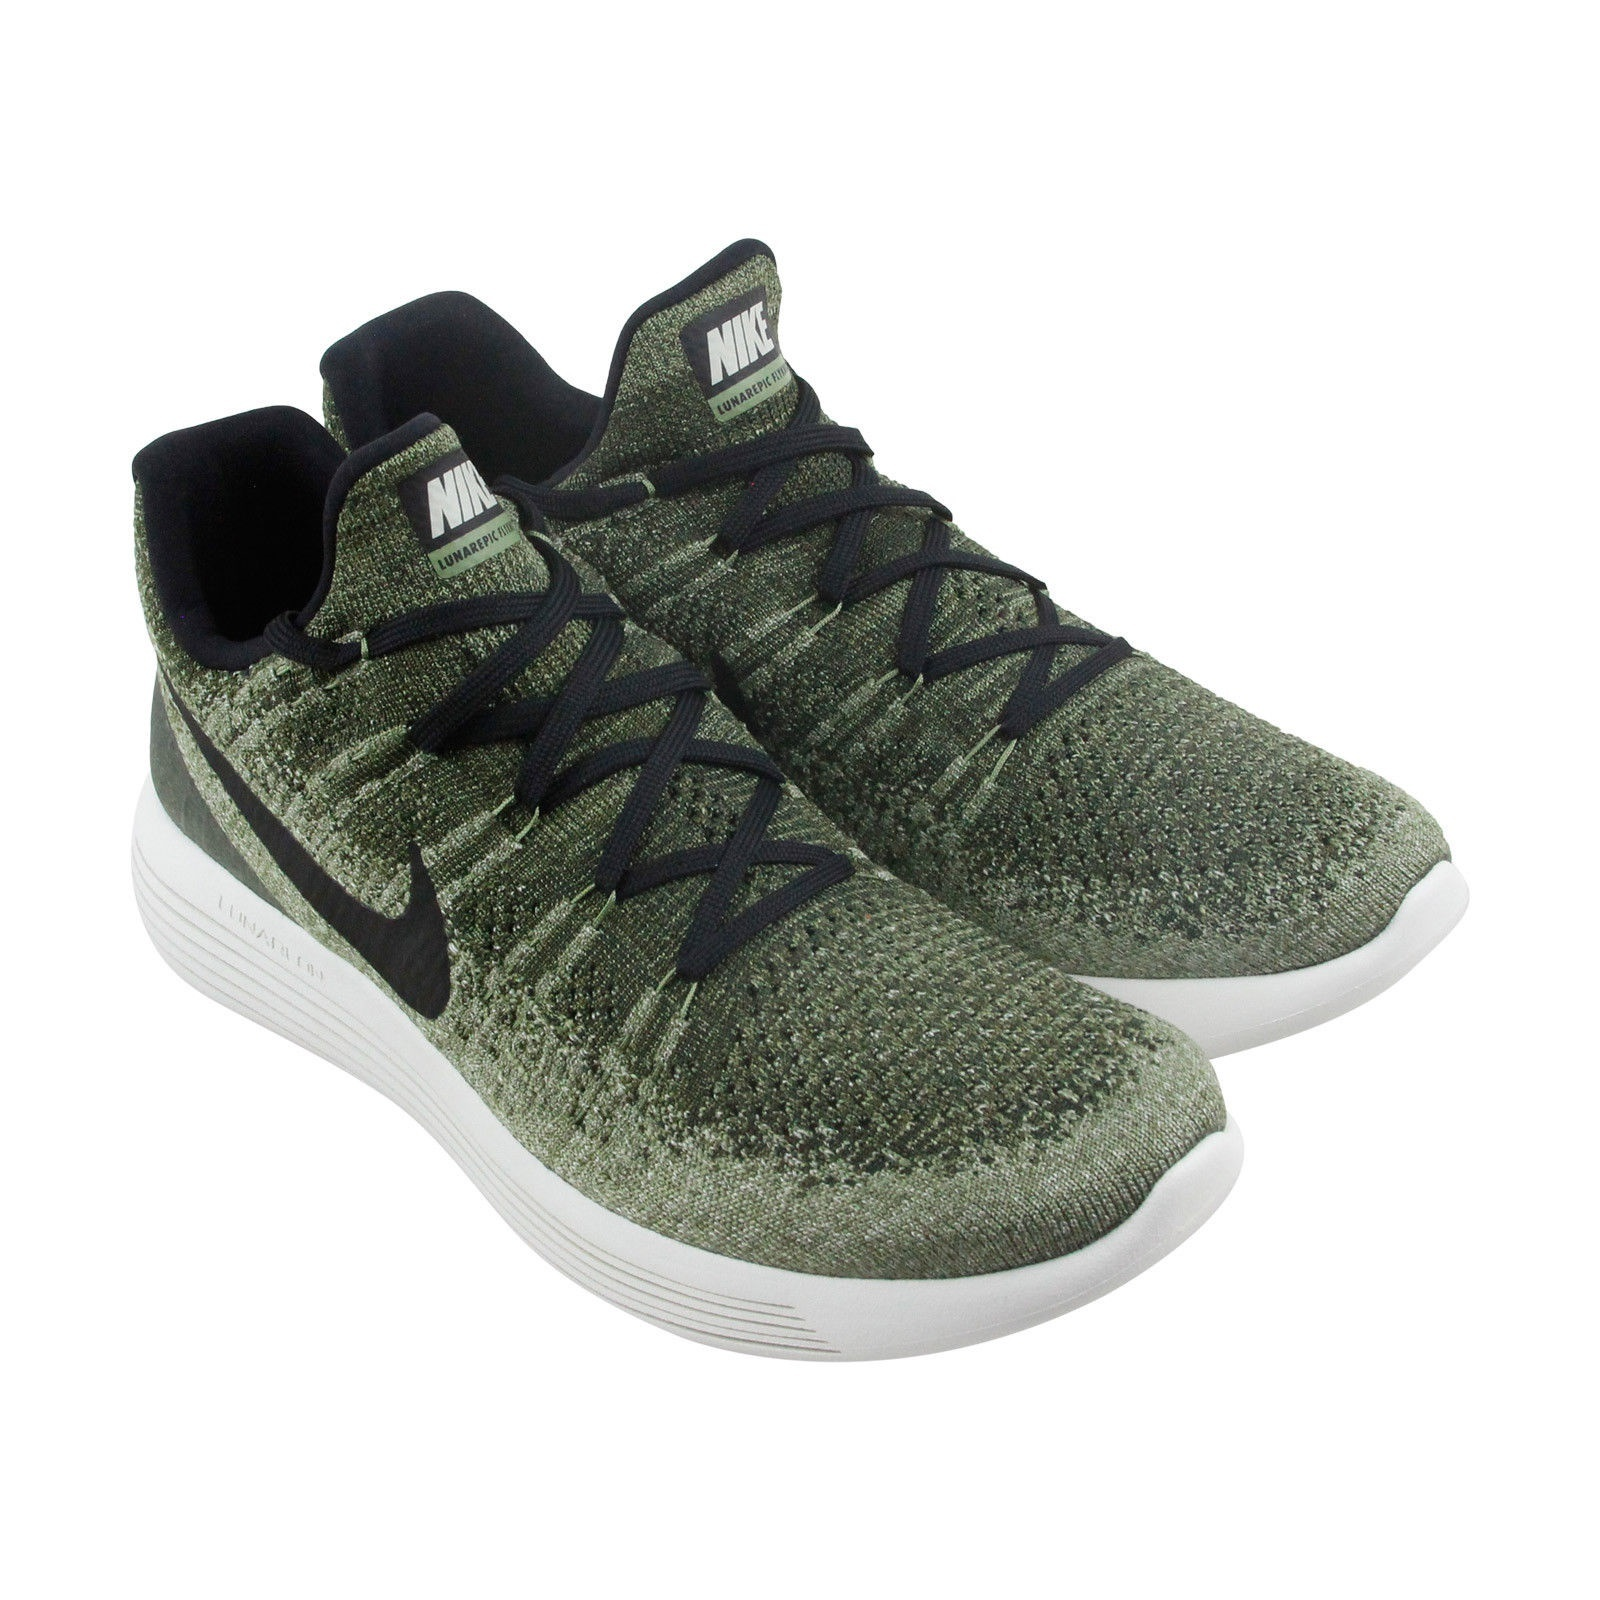 bf8044194276 fit to viewer. prev next. Nike Lunarepic Low Flyknit 2 Mens Green ...